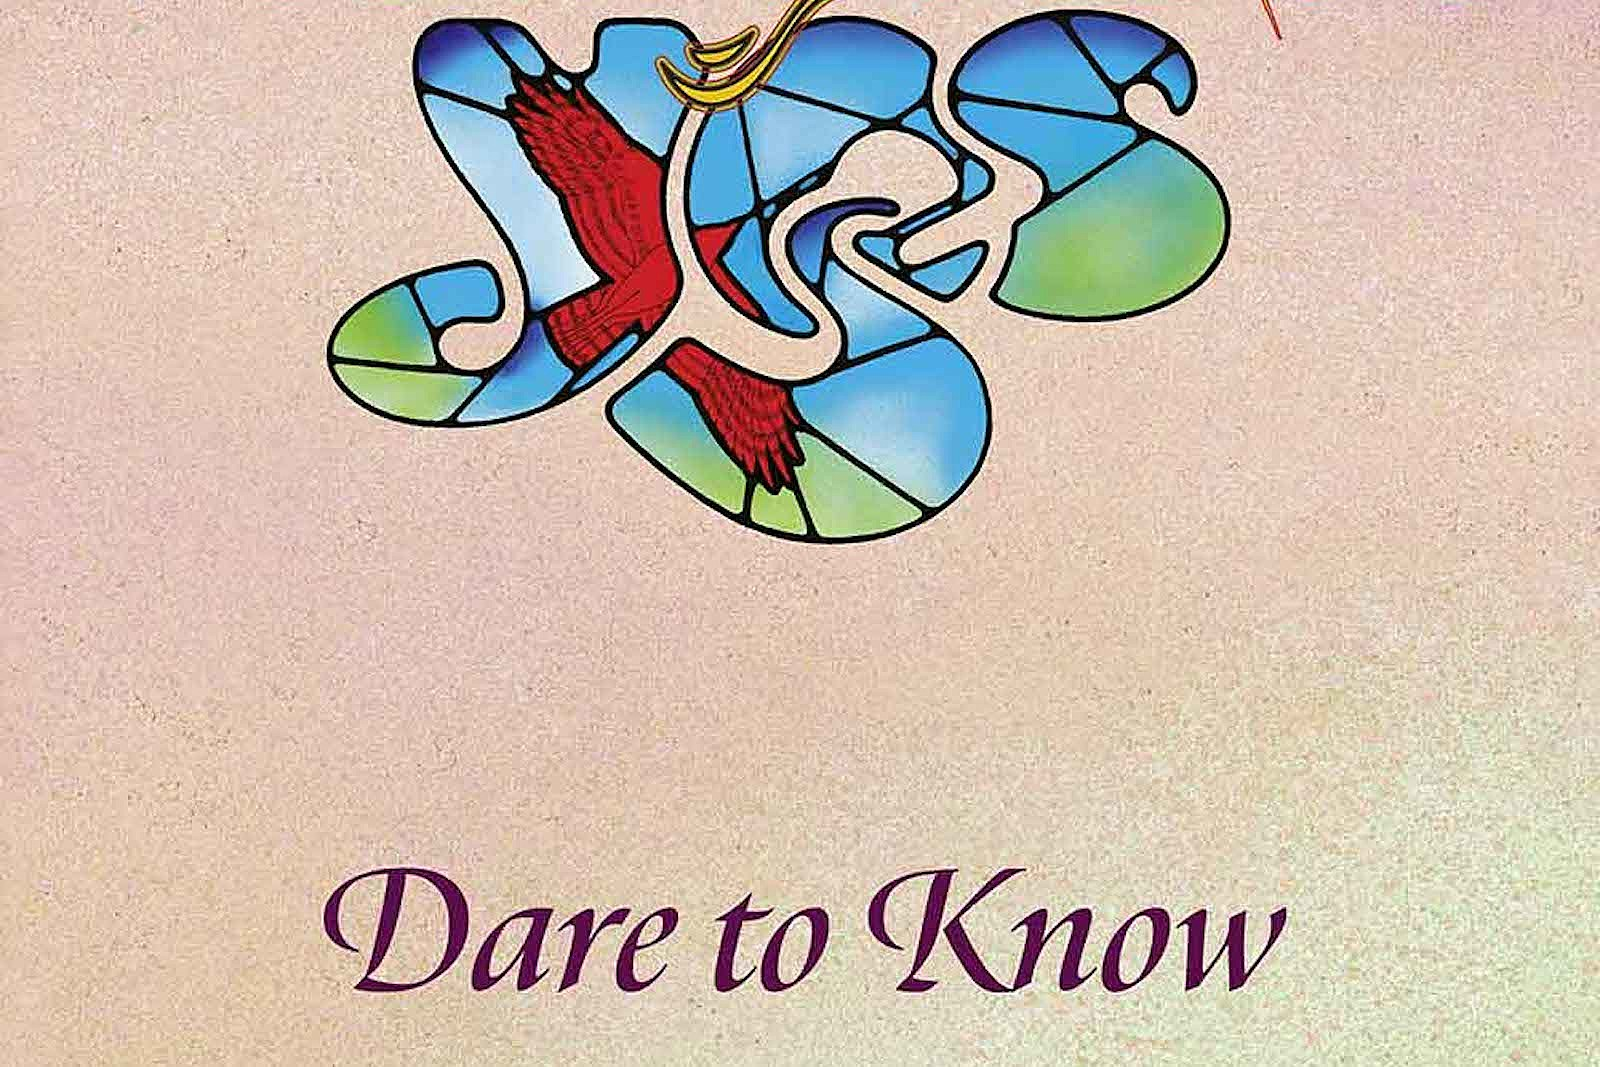 Listen to New Yes Song 'Dare to Know'